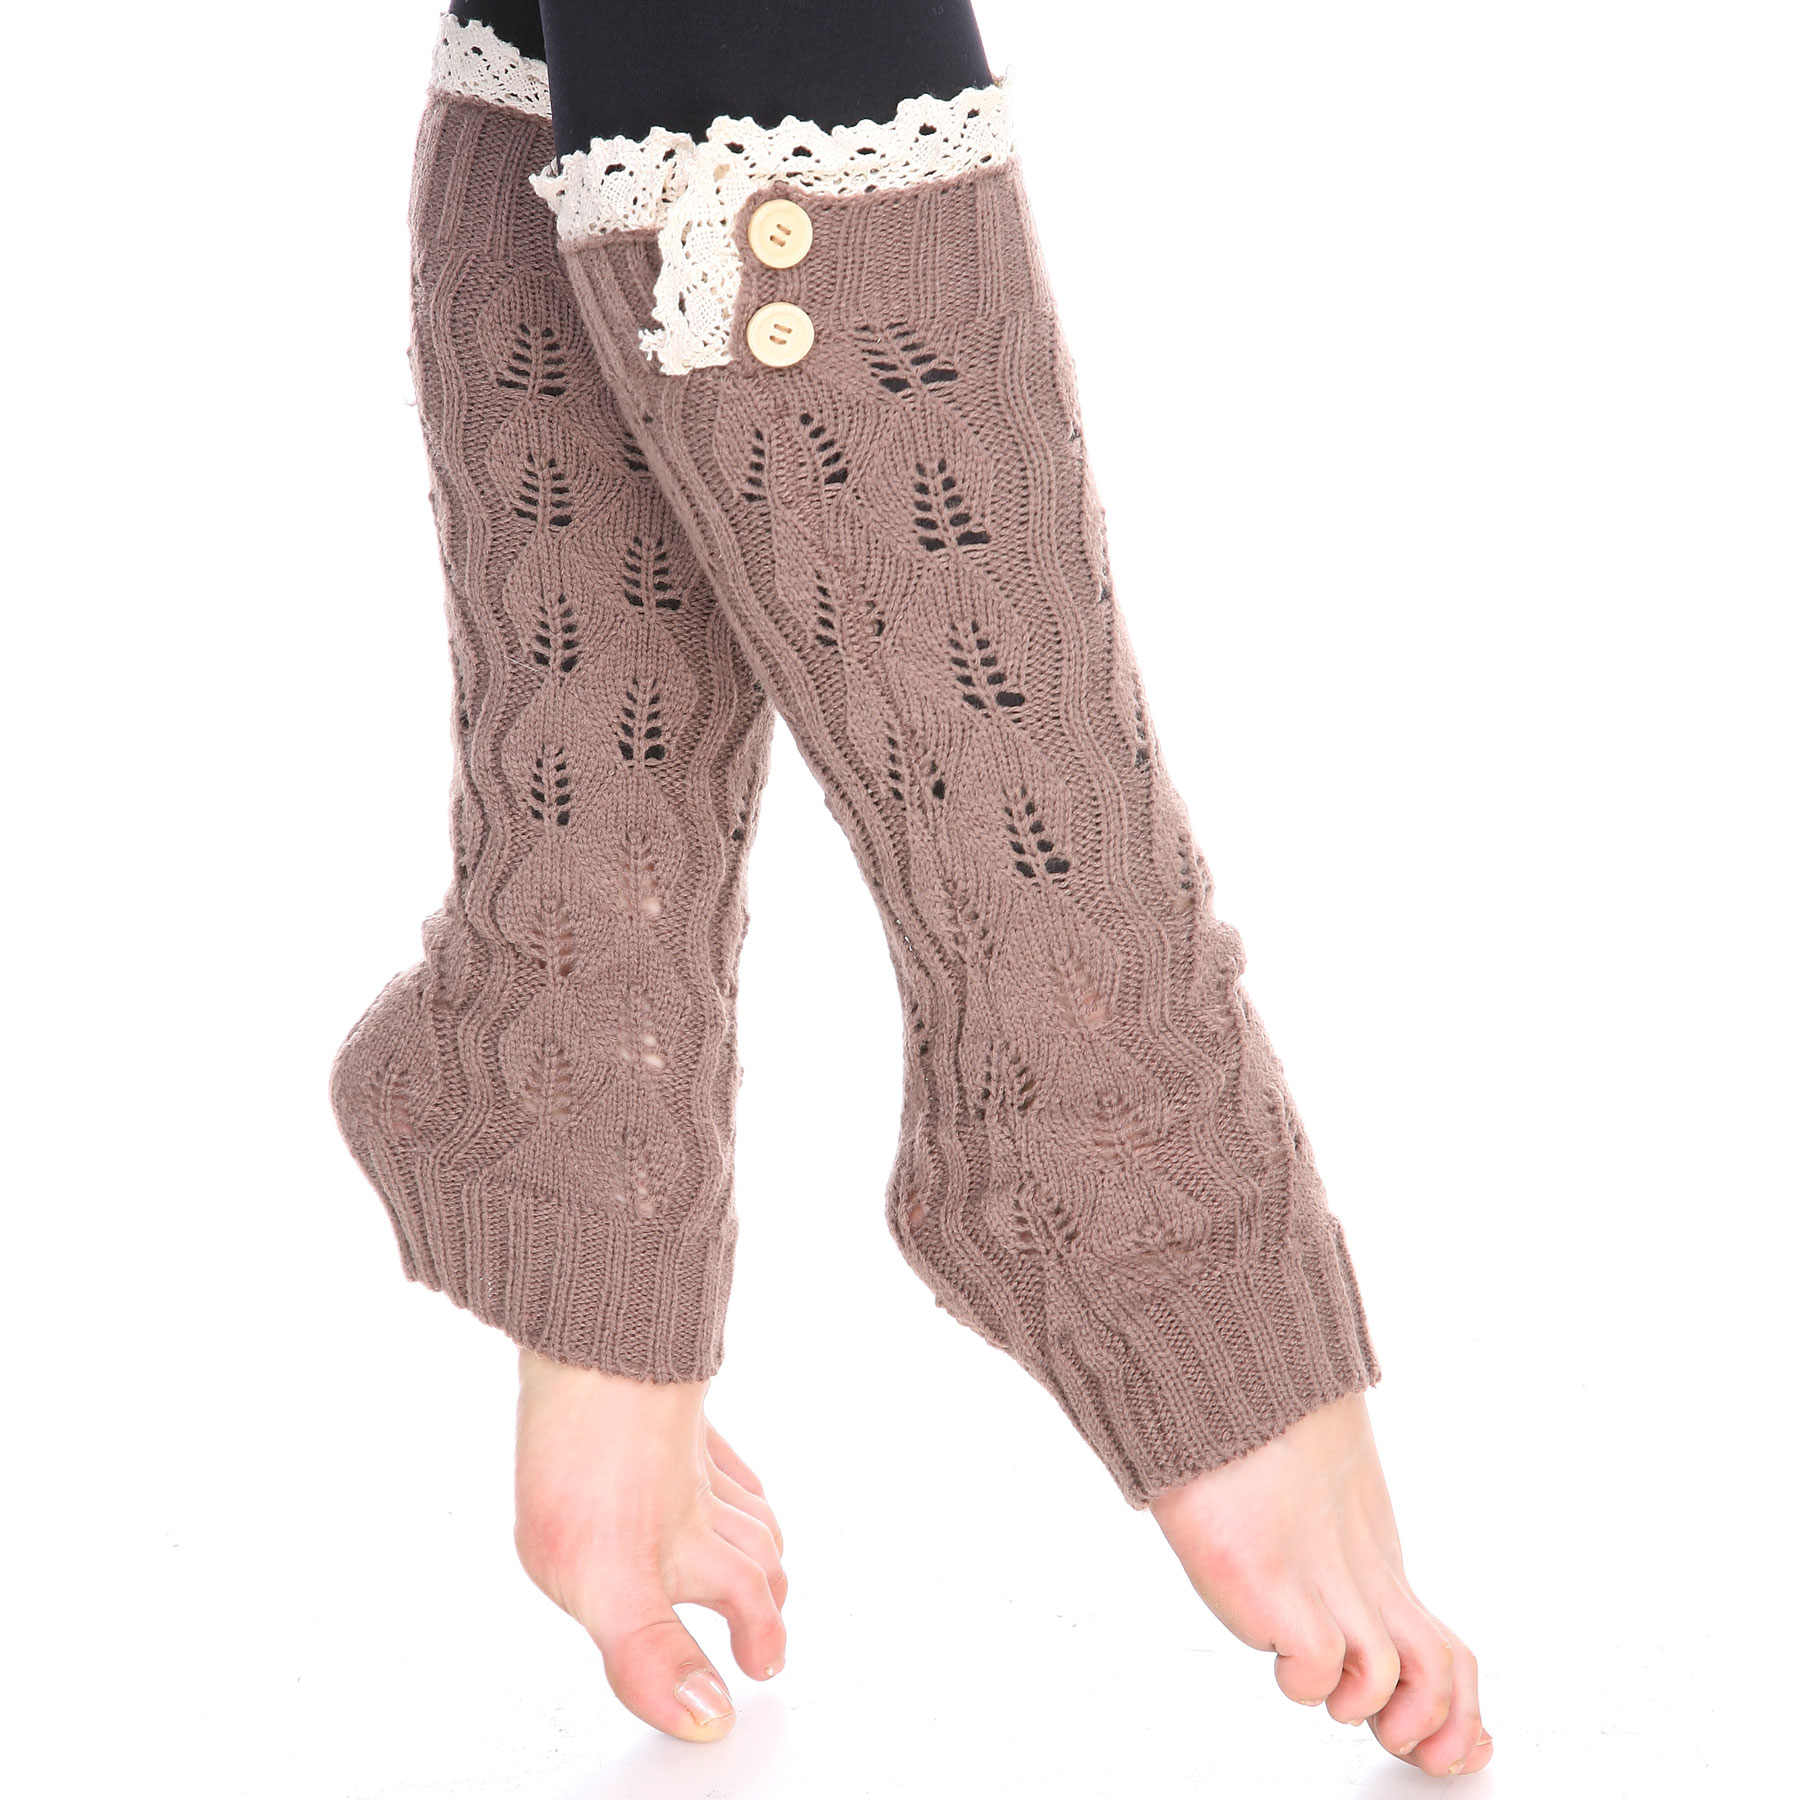 Wholesale Leg Warmers & Boot Toppers